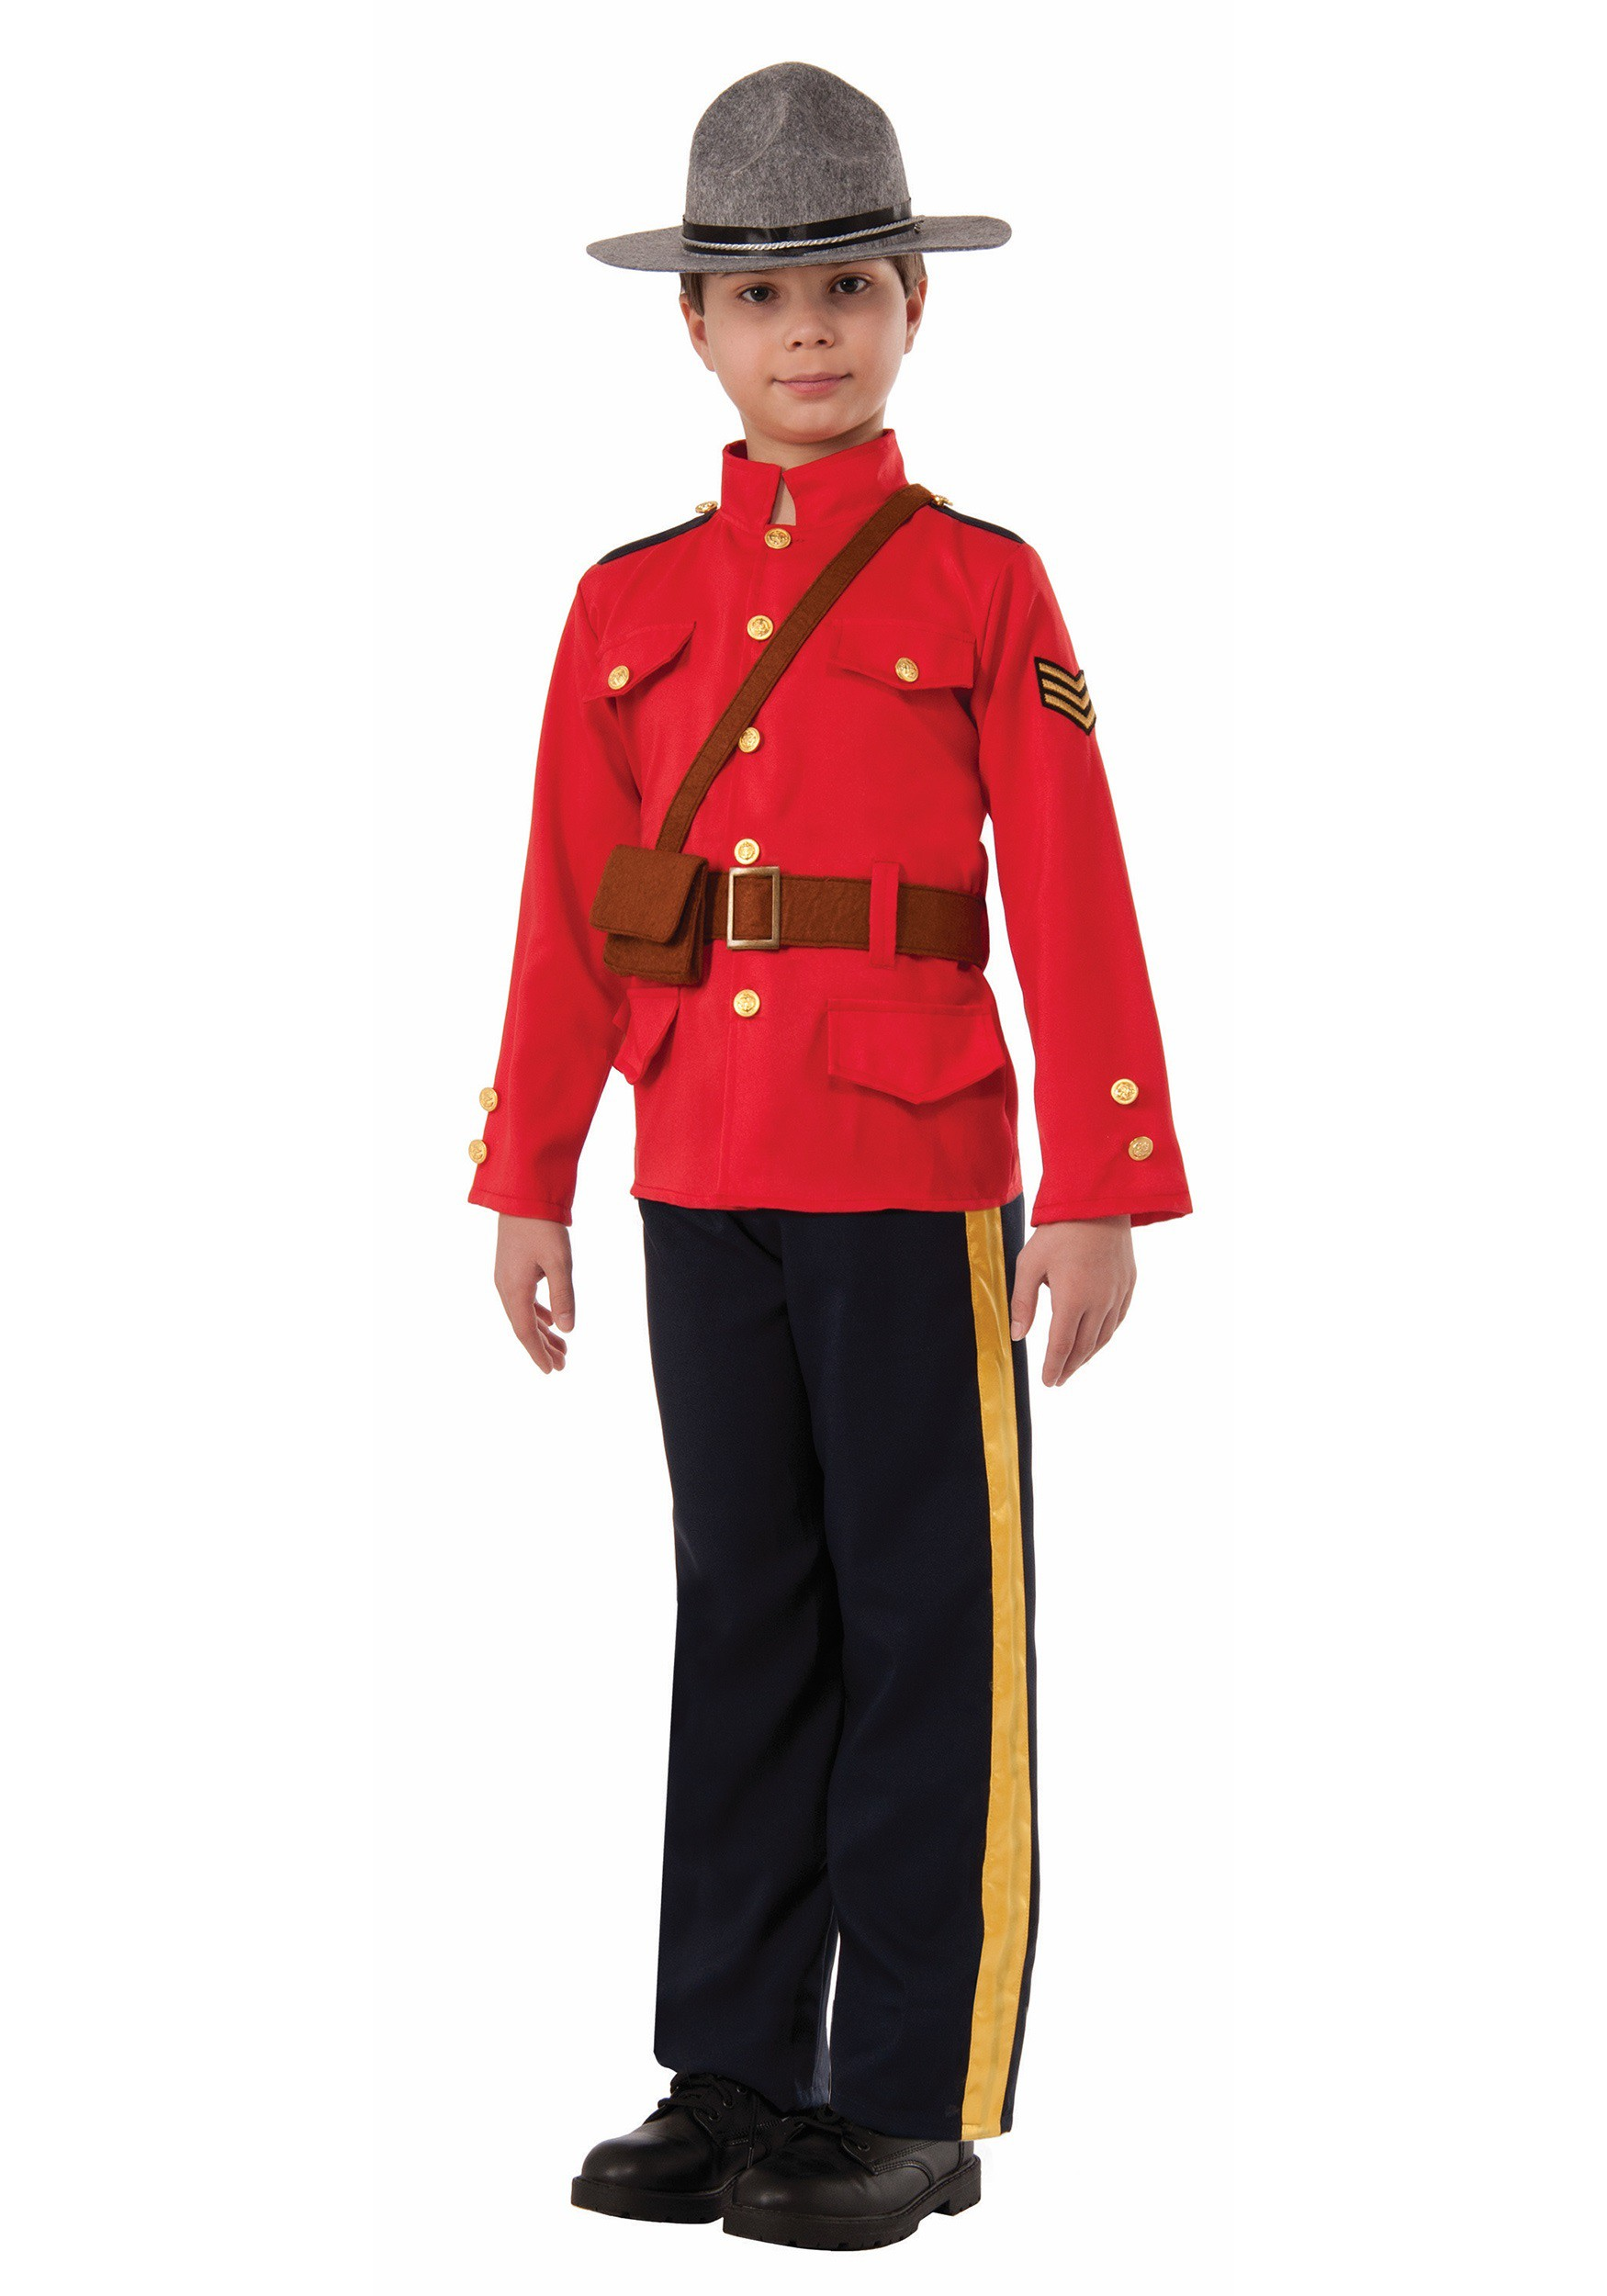 sc 1 st  Halloween Costumes & Boys Canadian Mountie Costume